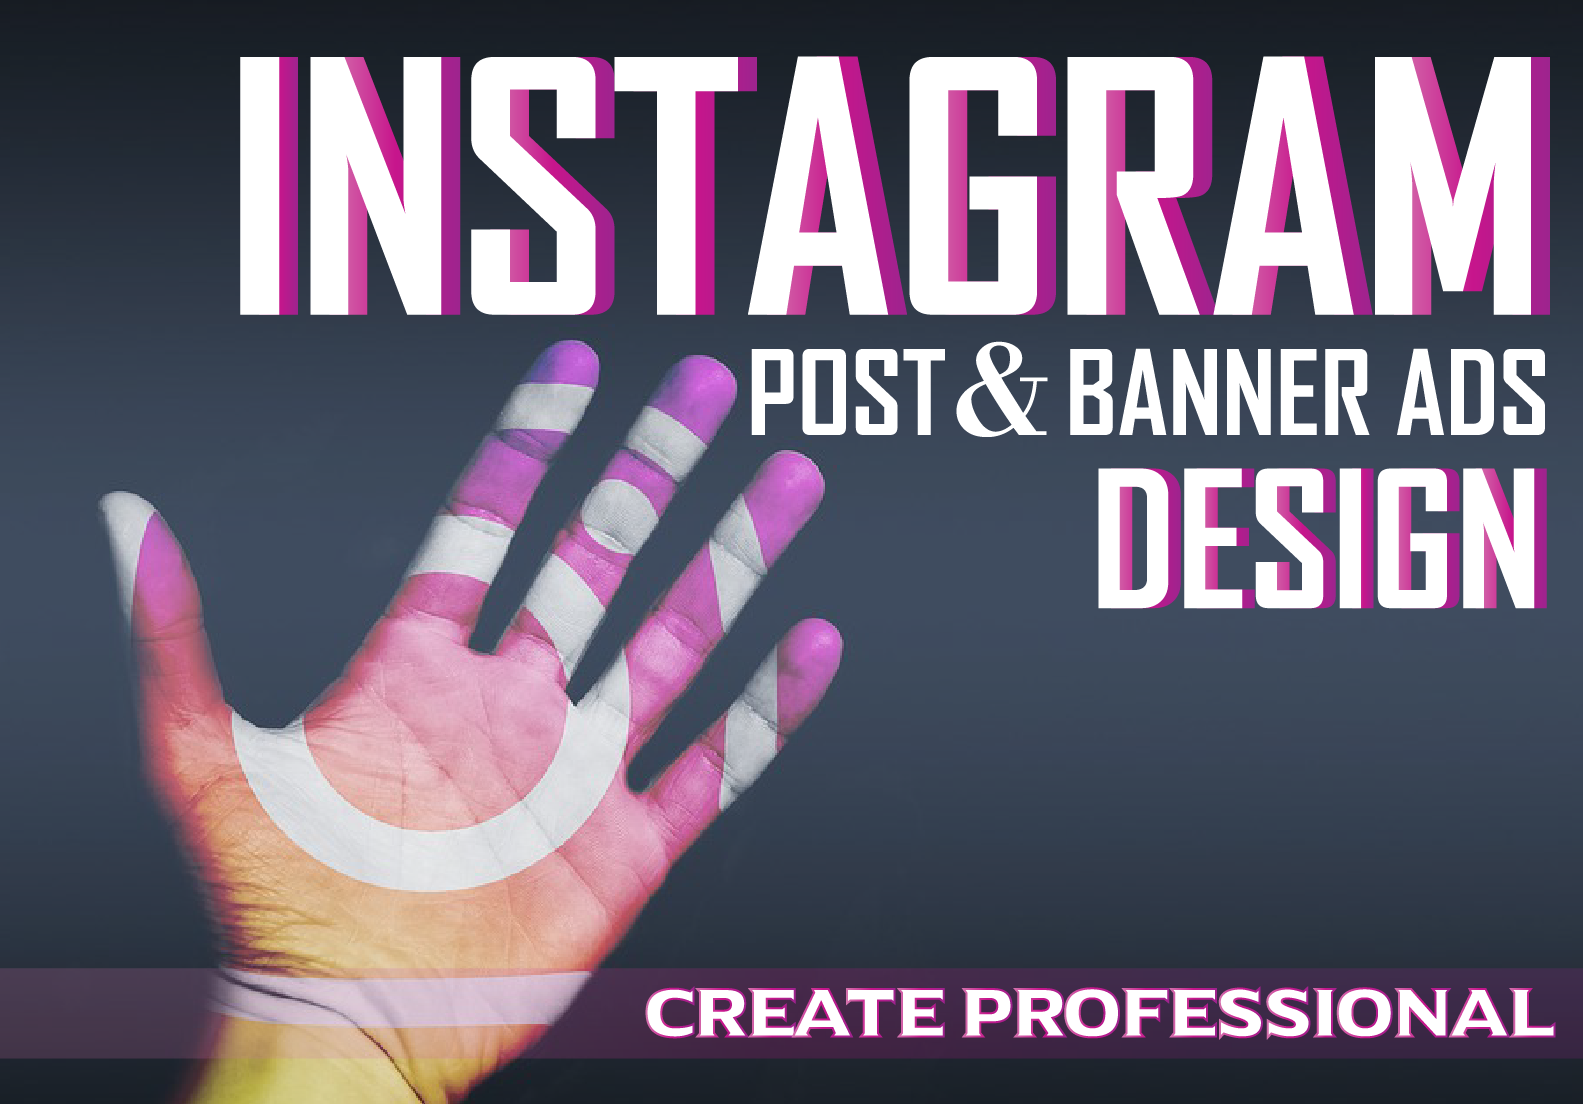 I will create professional Instagram post and banner ads design